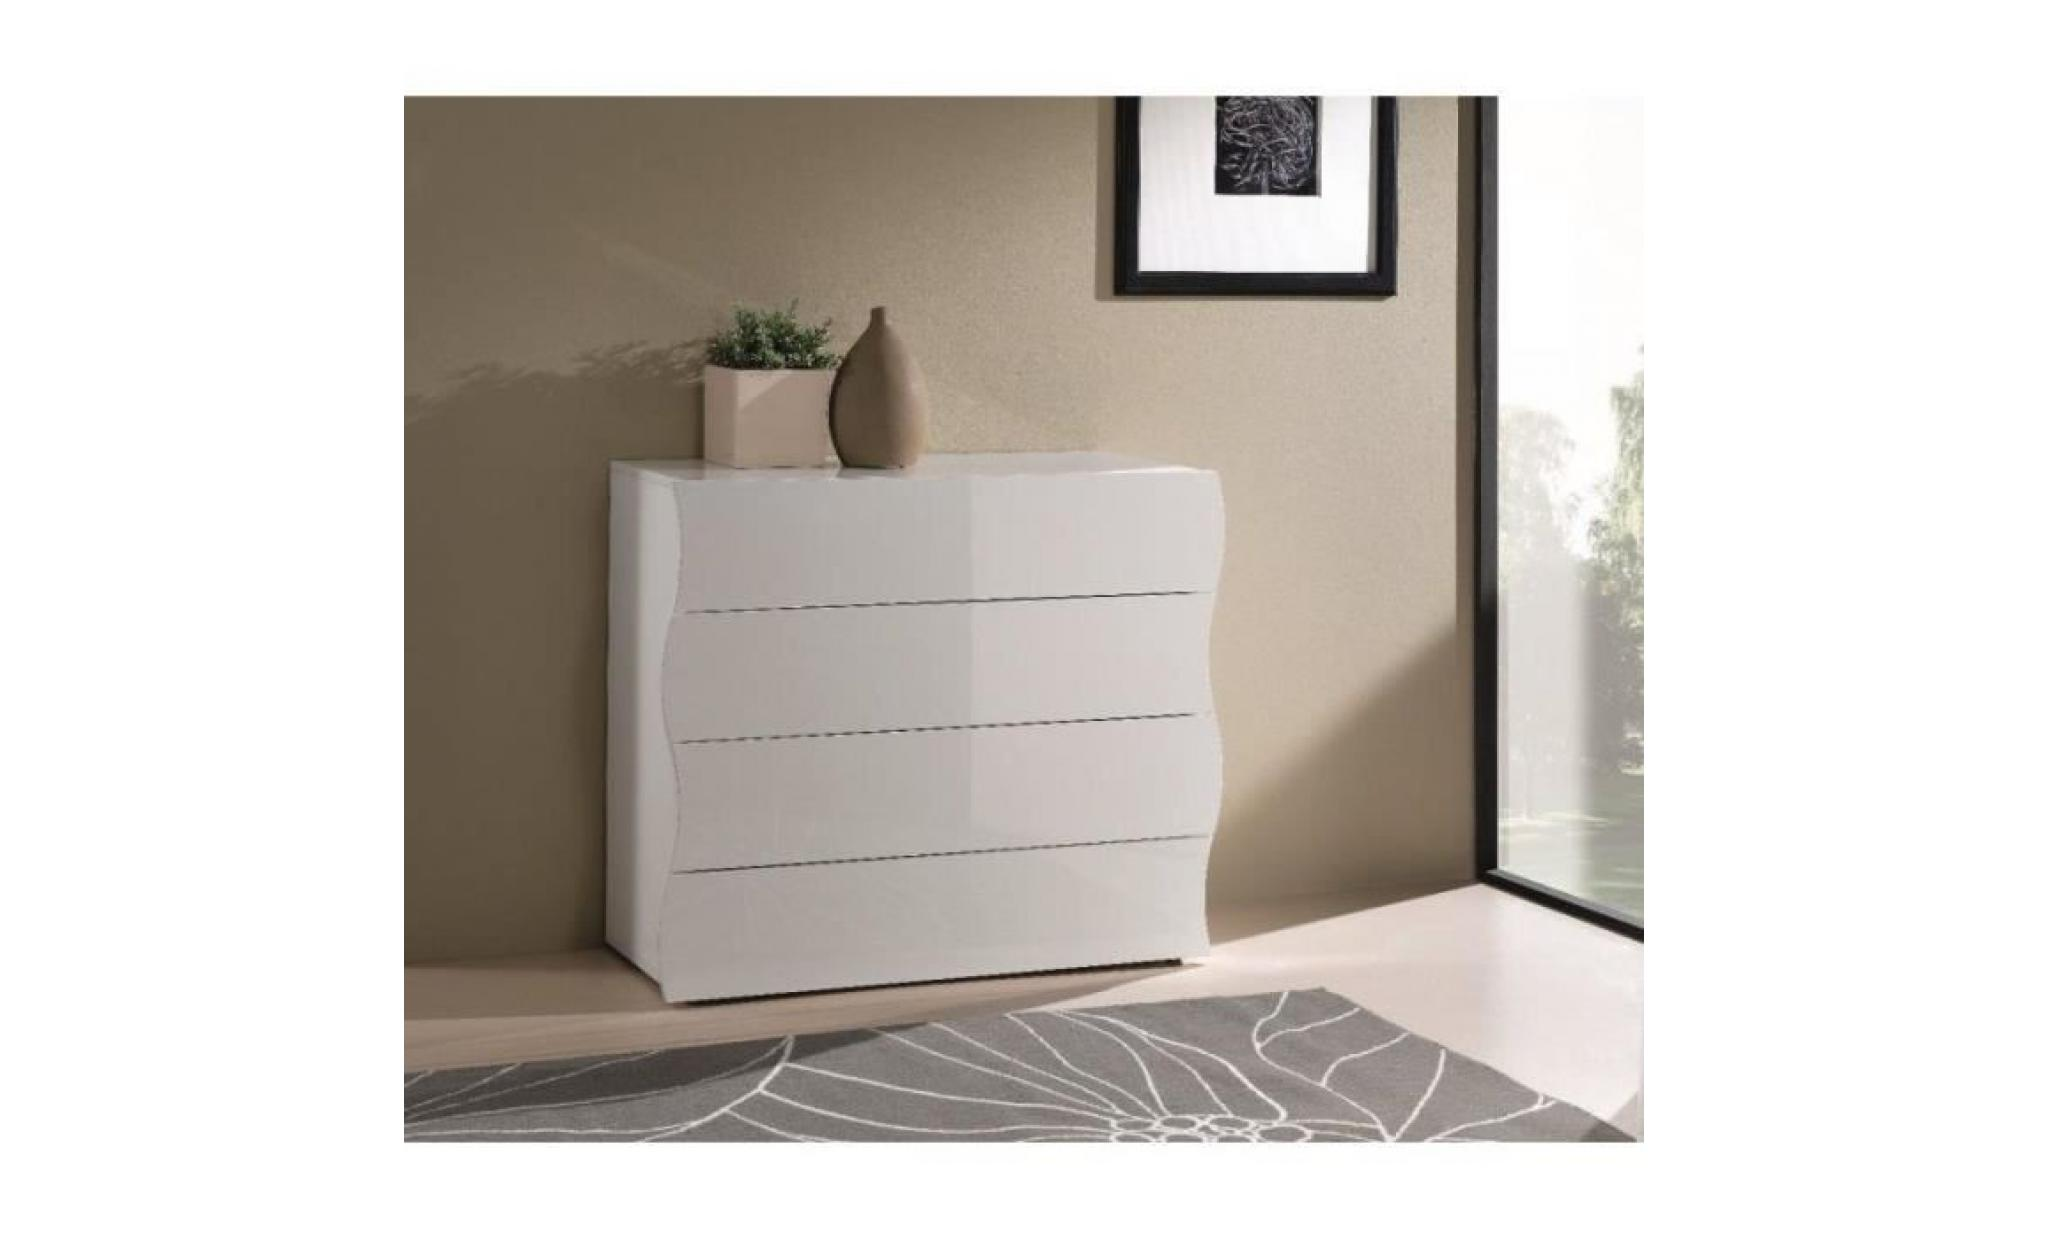 commode onda 4 tiroirs blanc brillant achat vente commode pas cher couleur et. Black Bedroom Furniture Sets. Home Design Ideas